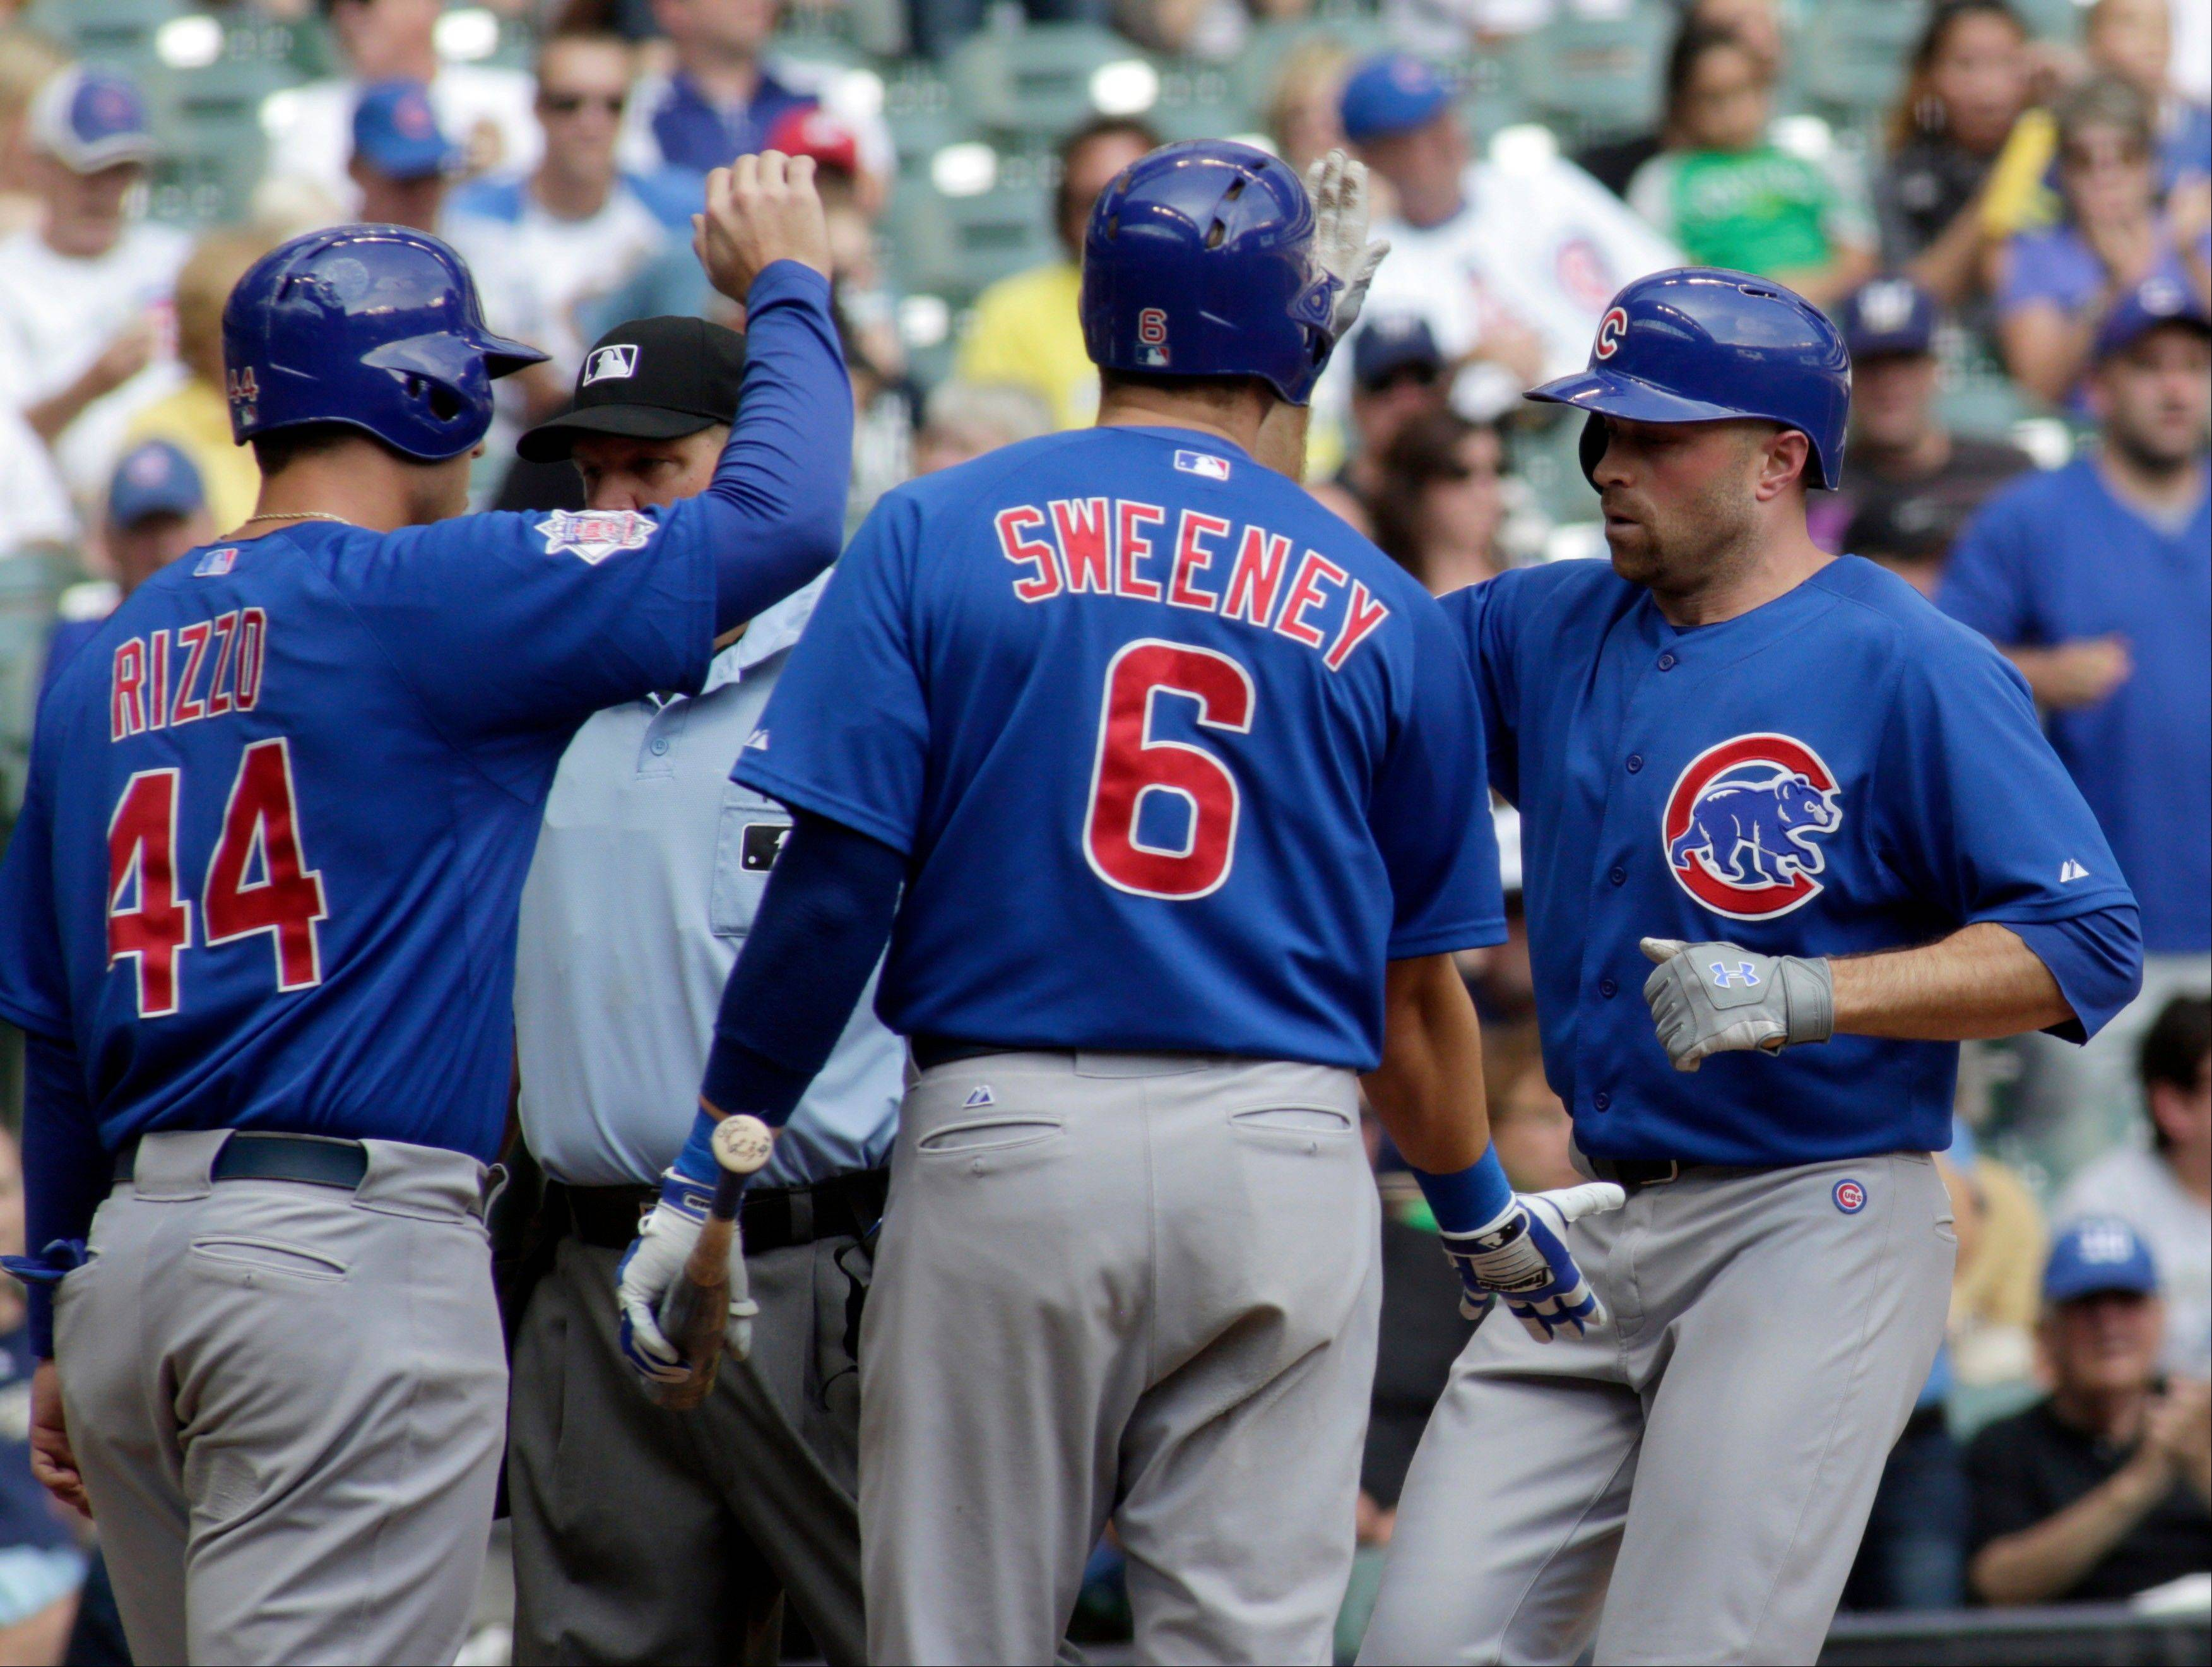 Associated Press The Cubs' Nate Schierholtz, right, is congratulated by teammates Anthony Rizzo, left, and Ryan Sweeney, center, after hitting a two-run home run against the Milwaukee Brewers during the third inning e Thursday in Milwaukee.